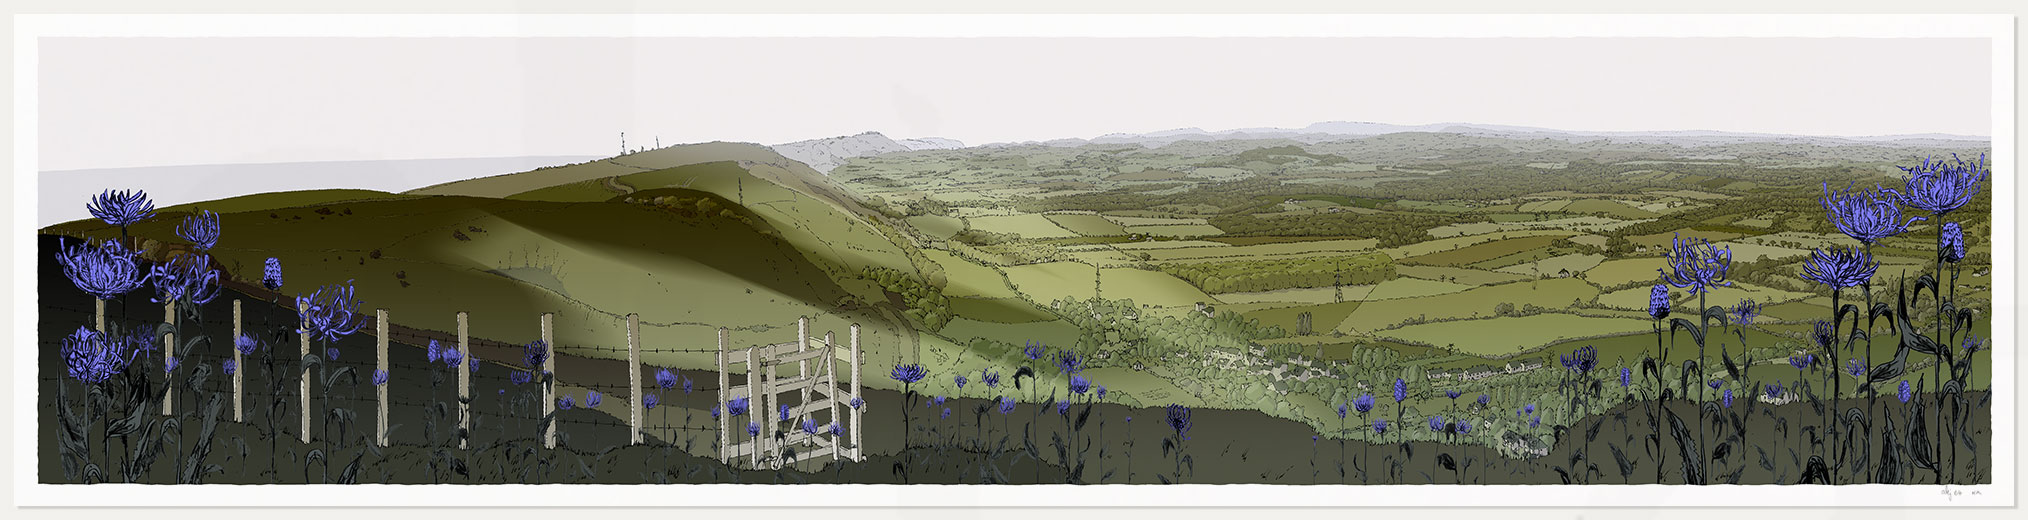 print named Devils Dike Round Headed Rampion, Pride of Sussex by artist alej ez